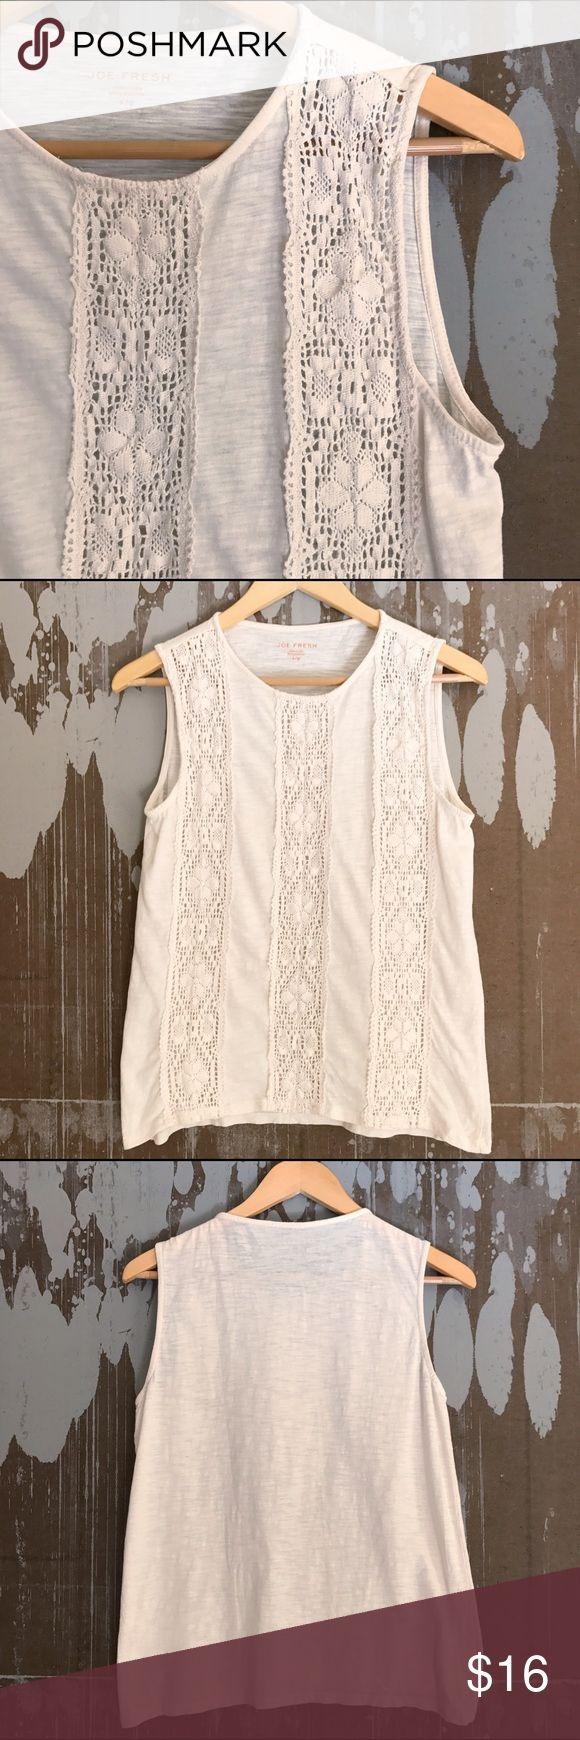 "Joe Fresh Ivory Simple Neutral Lace Top Sz Small Very sweet Joe Fresh ivory lace top! Neutral to carry you through every season, layer it, accessorize it, love it! Great texture and details. Size Small. Underarm to underarm: 19"" Length: 23.5"" Gently pre-owned, no flaws. Joe Fresh Tops"